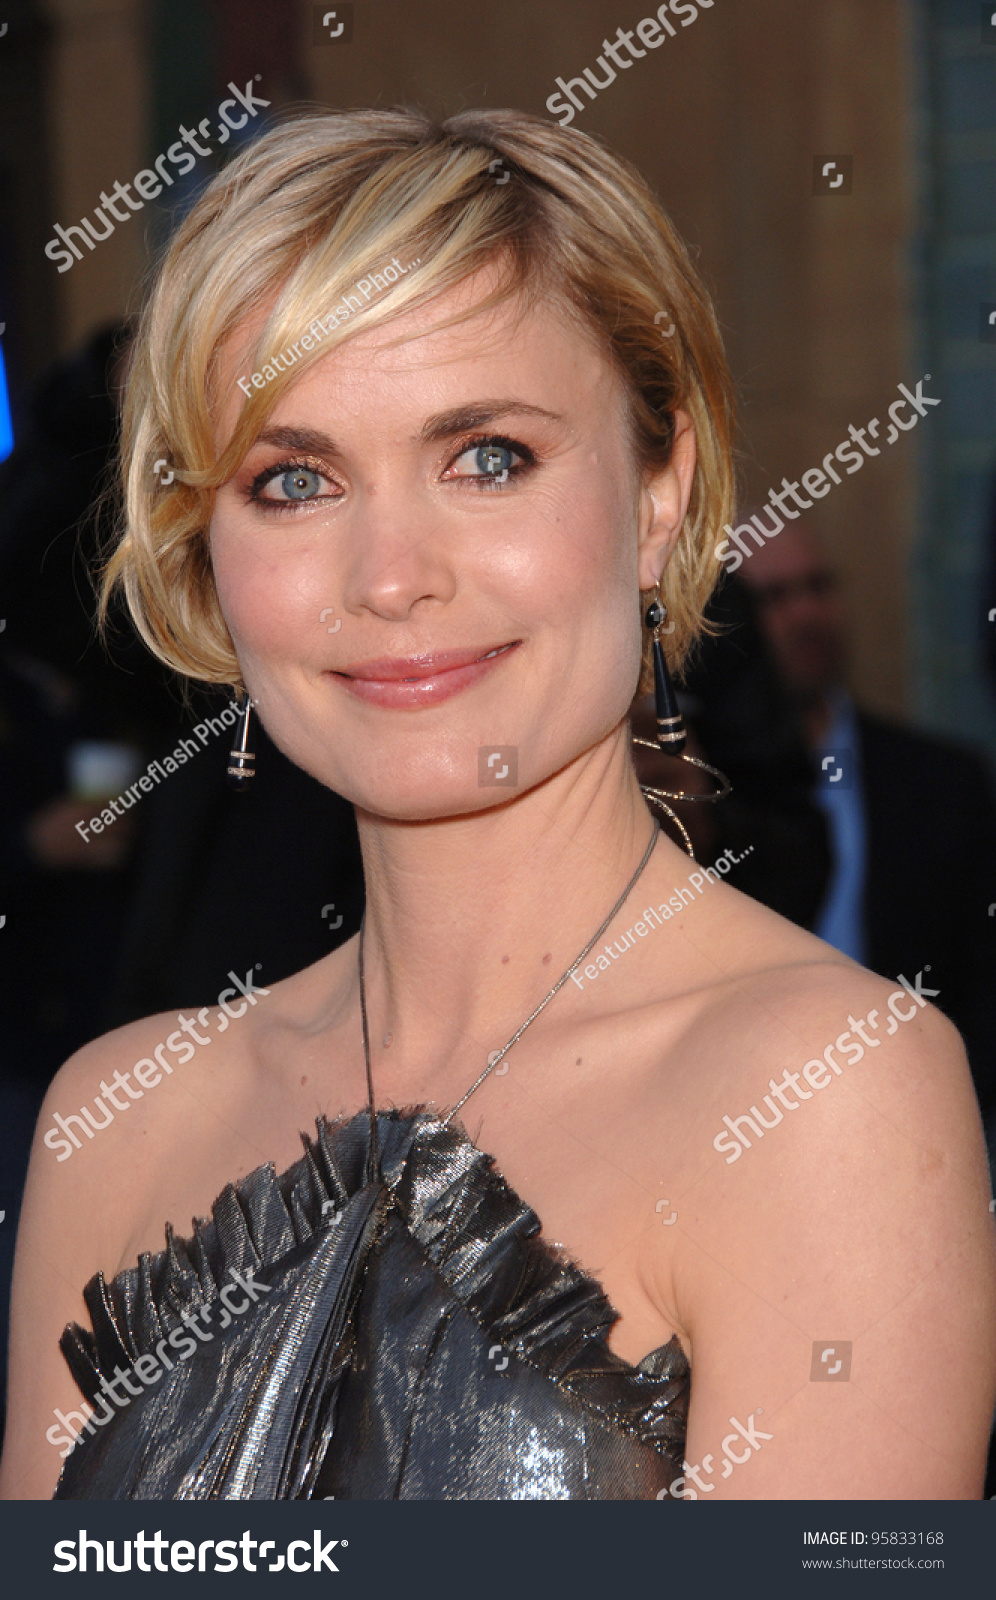 Cleavage TheFappening Radha Mitchell naked photo 2017